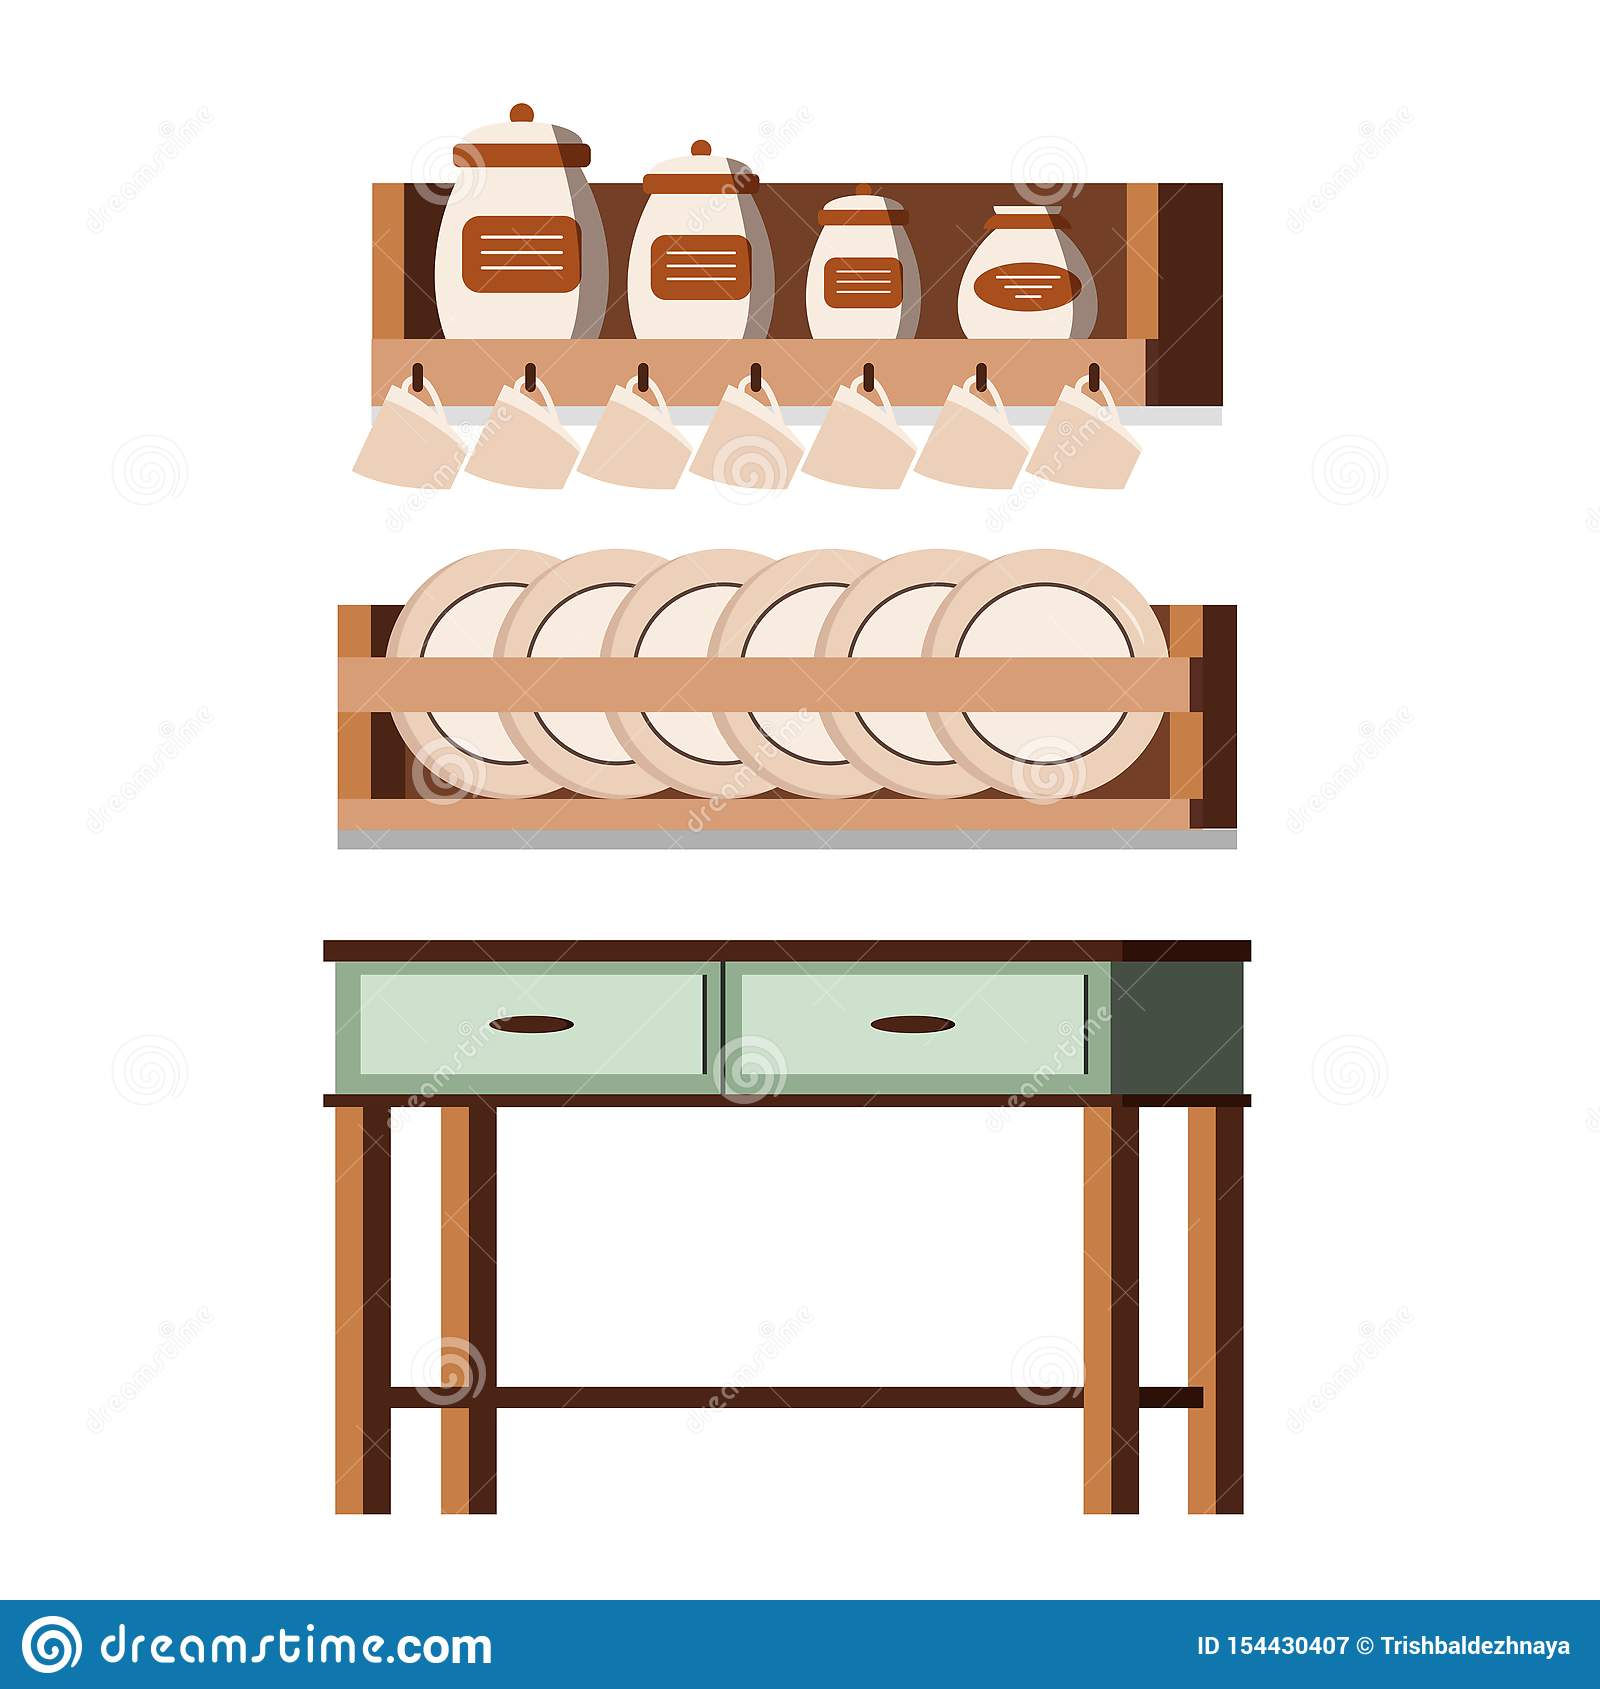 Wooden kitchen rustic furniture interior scene isolated on white background: shelves with jars, cups, plates, table, cans